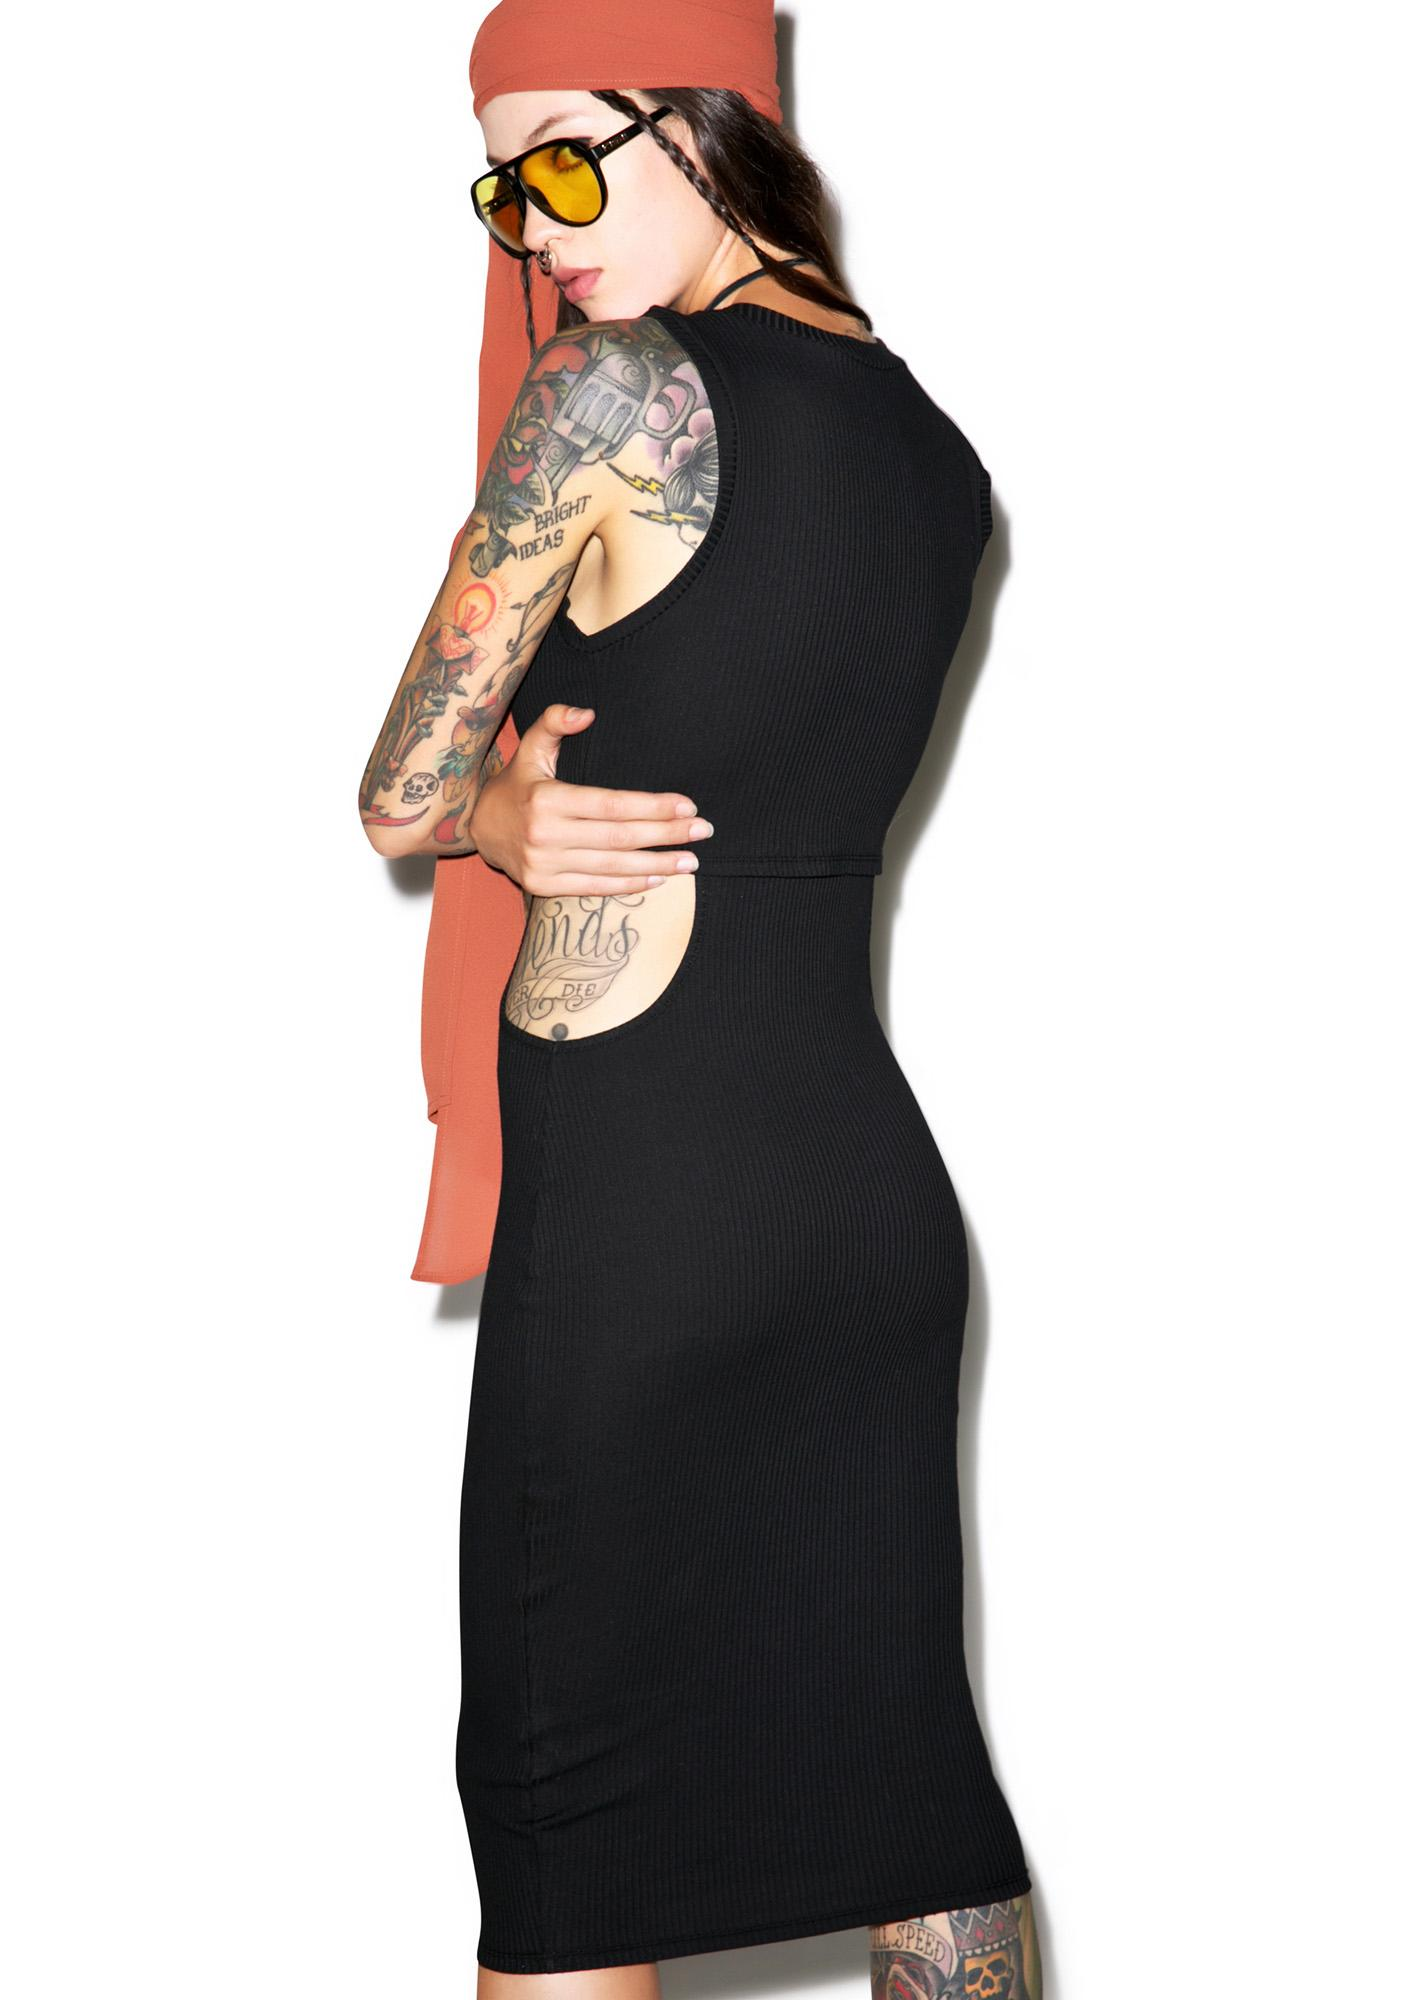 Sidechick Bodycon Dress